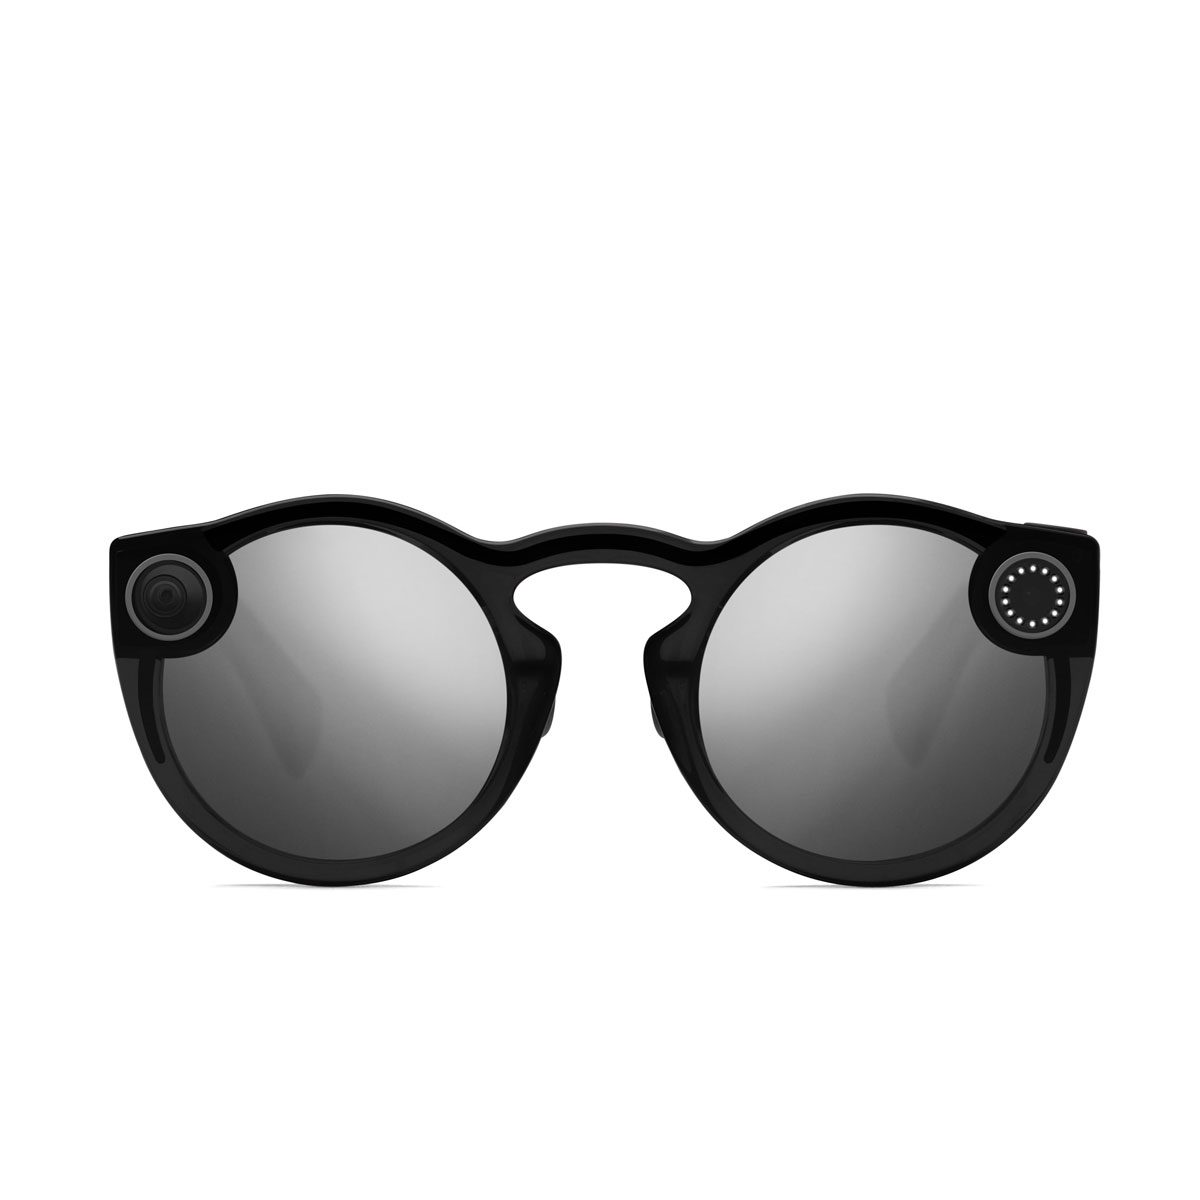 Smart sunglasses